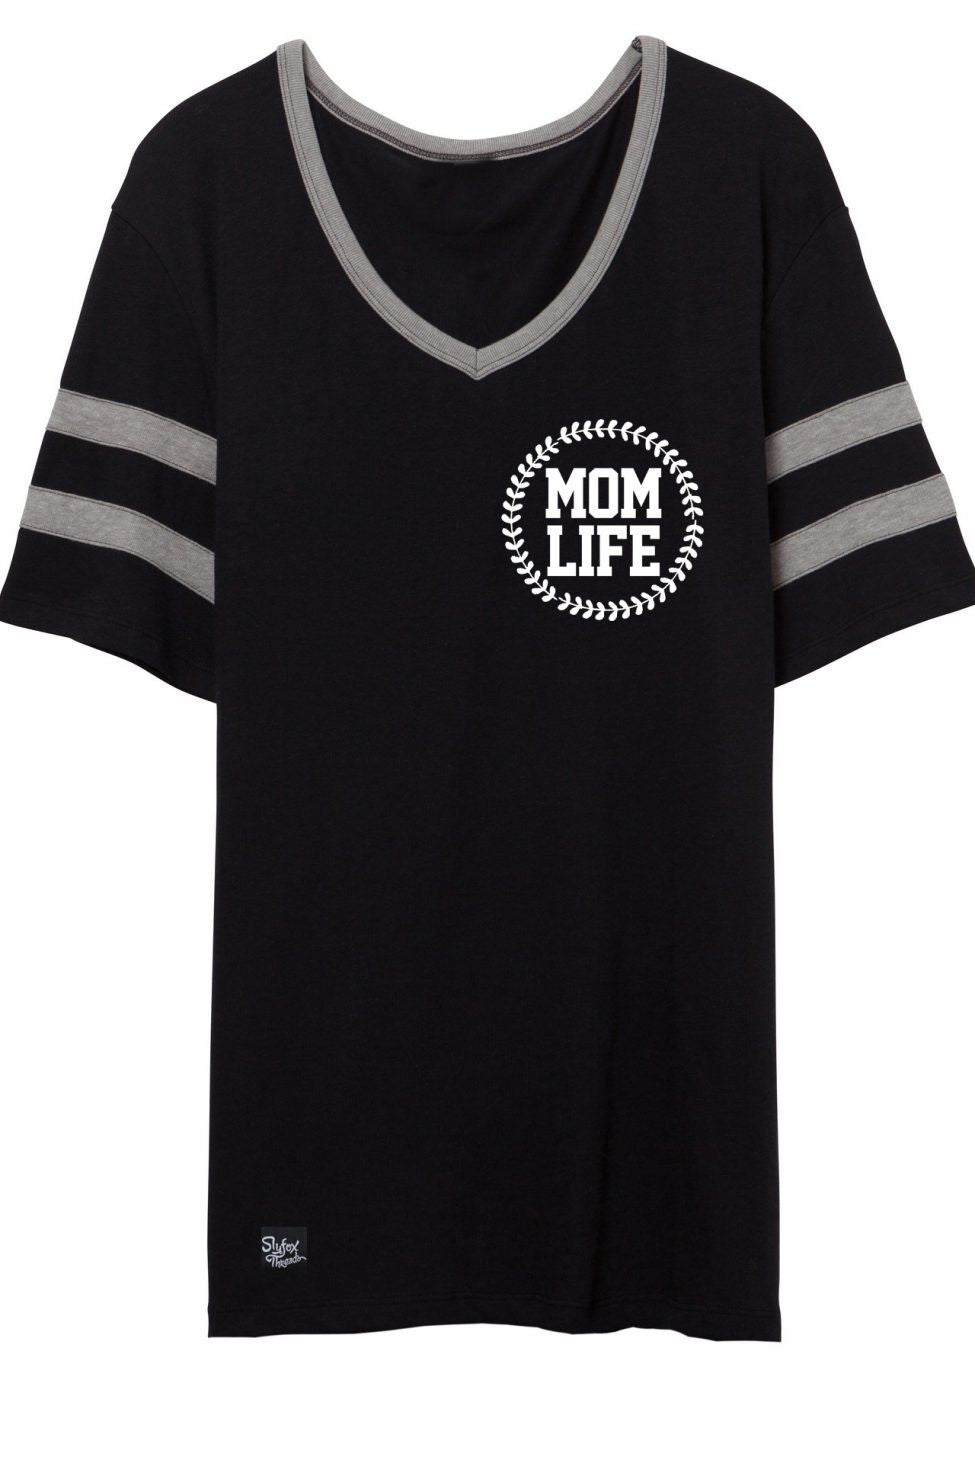 Mom Life Black Pocket Design